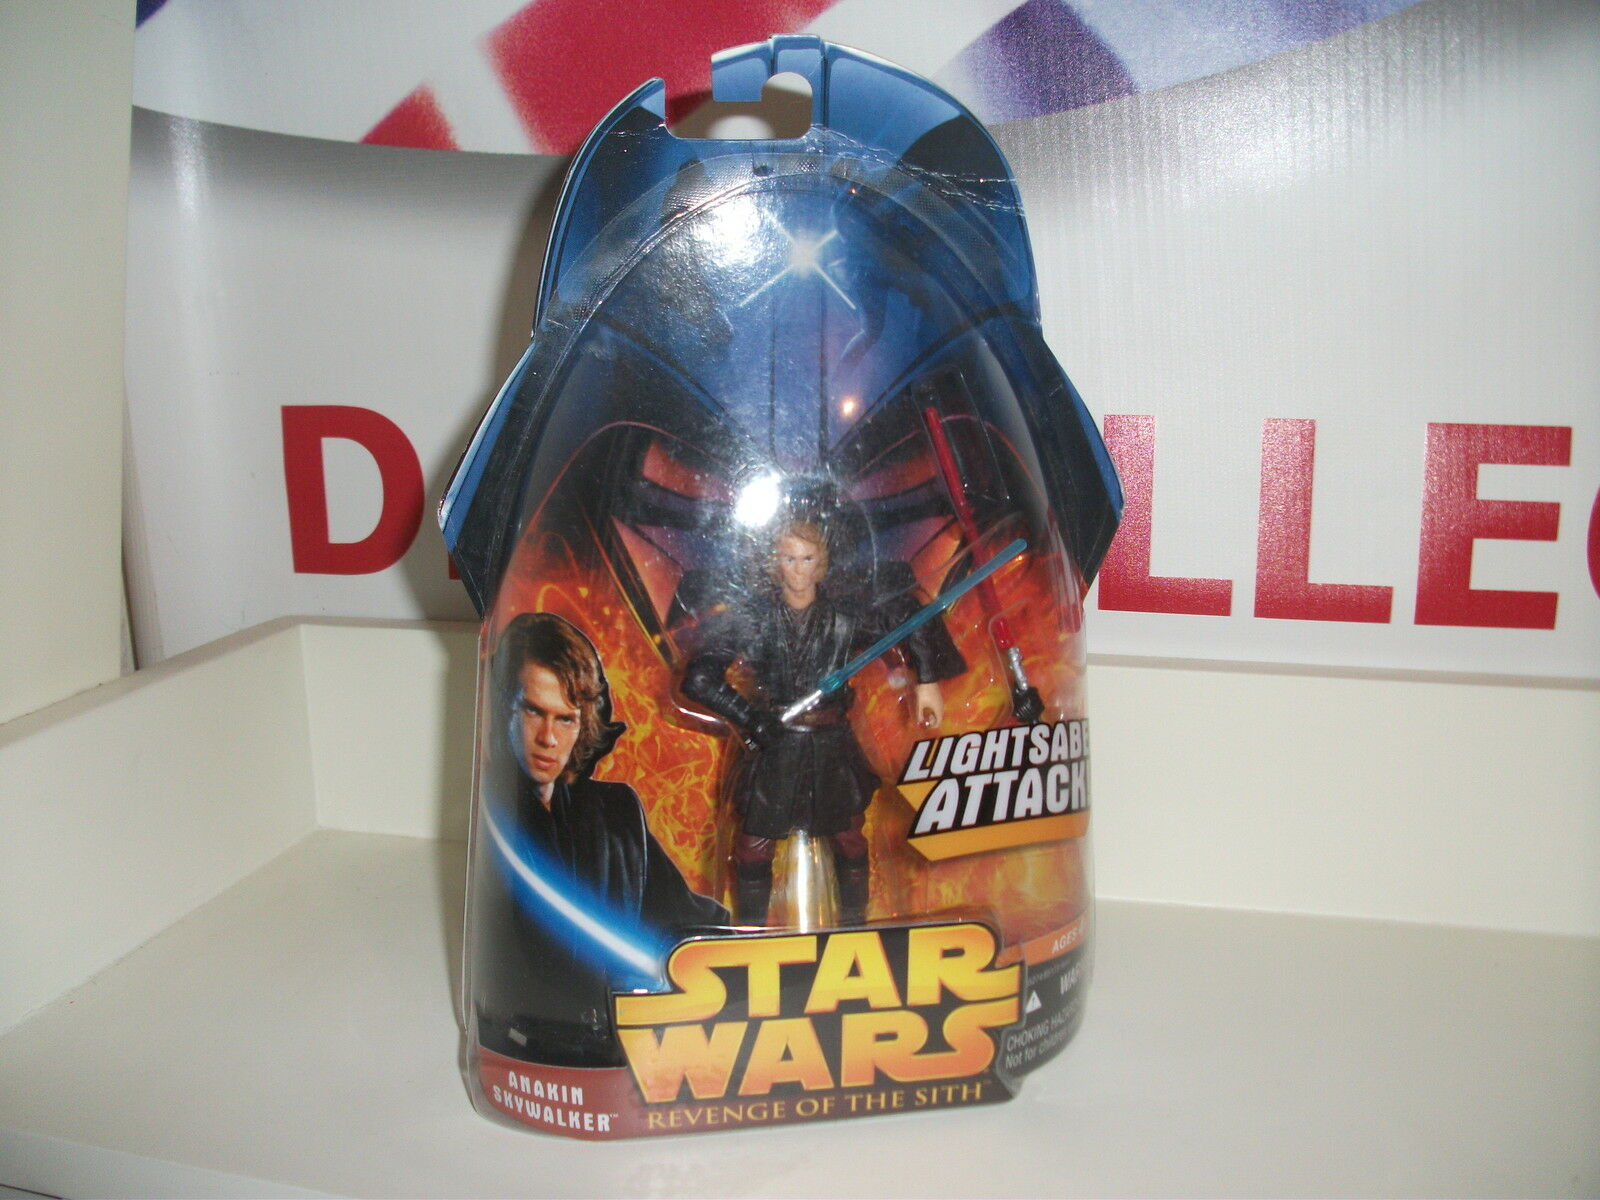 Star wars REVENGE OF THE SITH, Anakin Skywalker NEW ON DAMAGED CARD